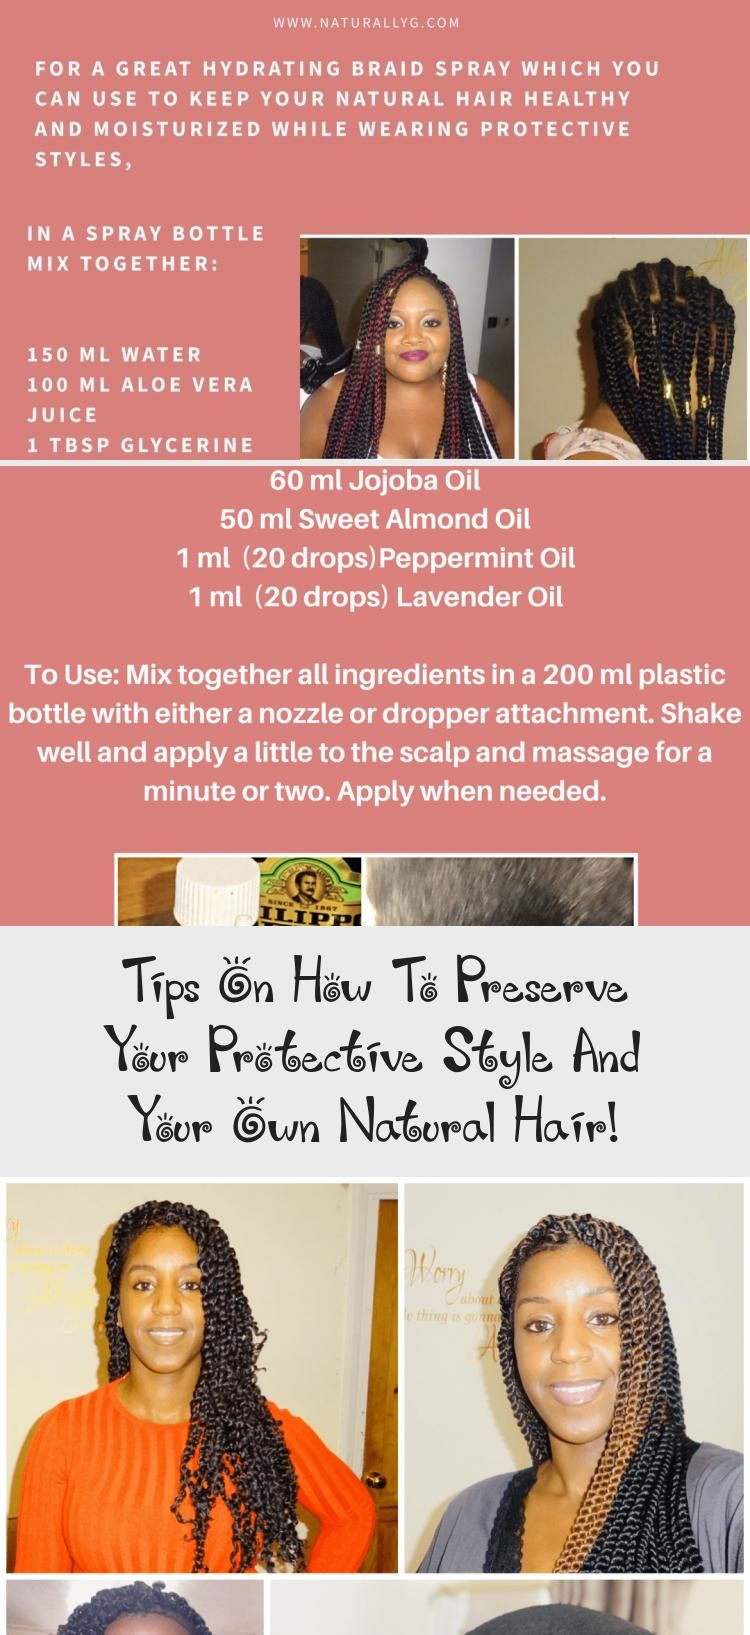 Tips On How To Preserve Your Protective Style And Your Own Natural